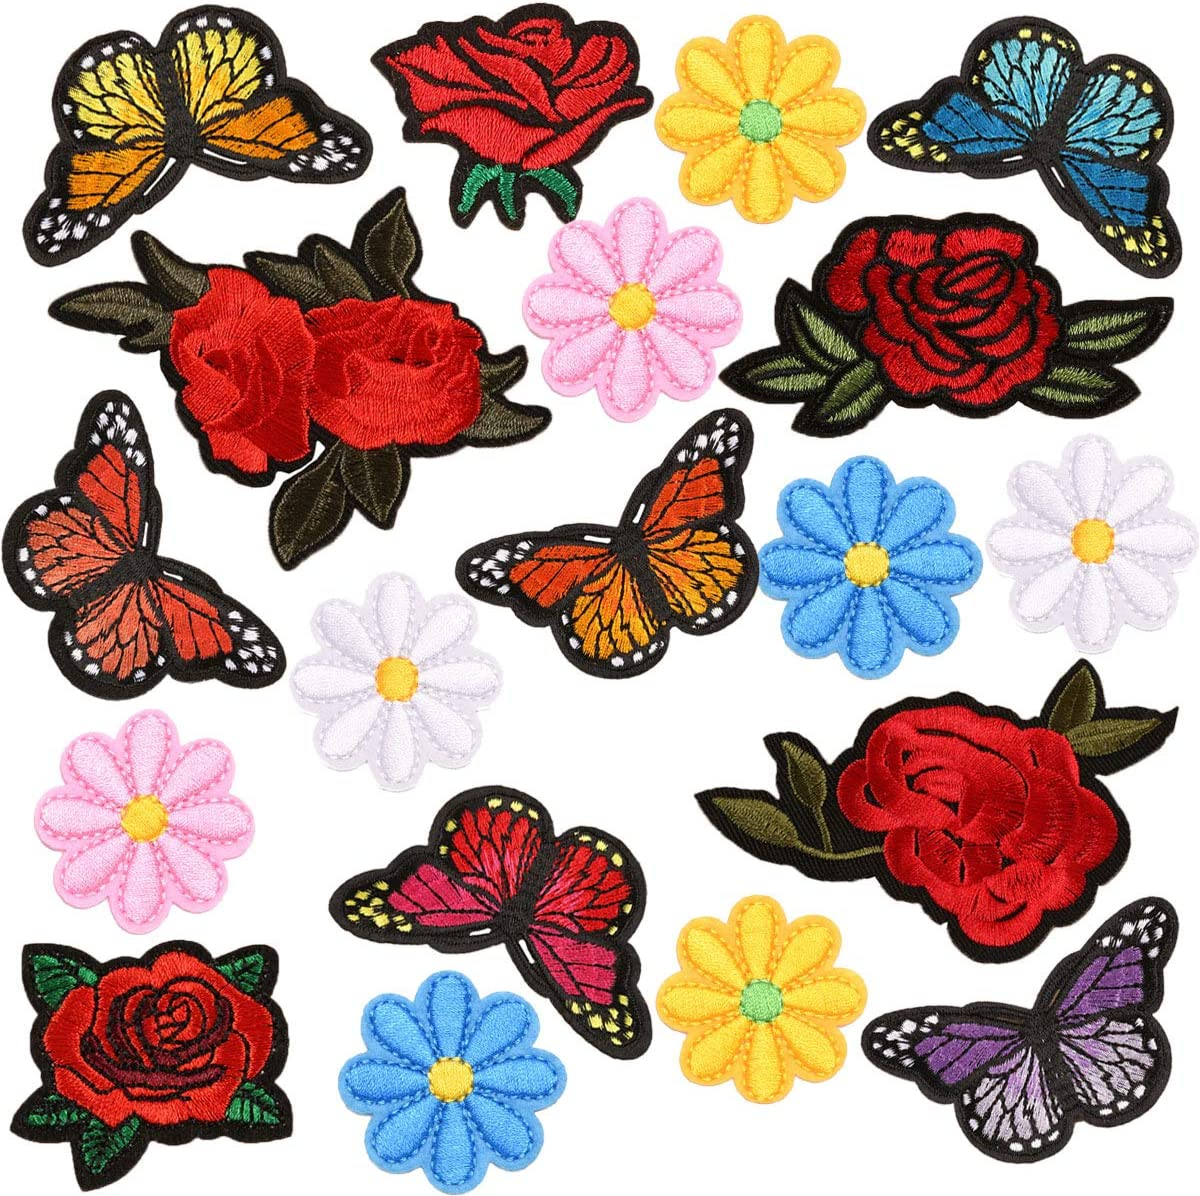 Butterflies Flower Applique With Embroidery For DIY Patch Clothes Craft Sew On